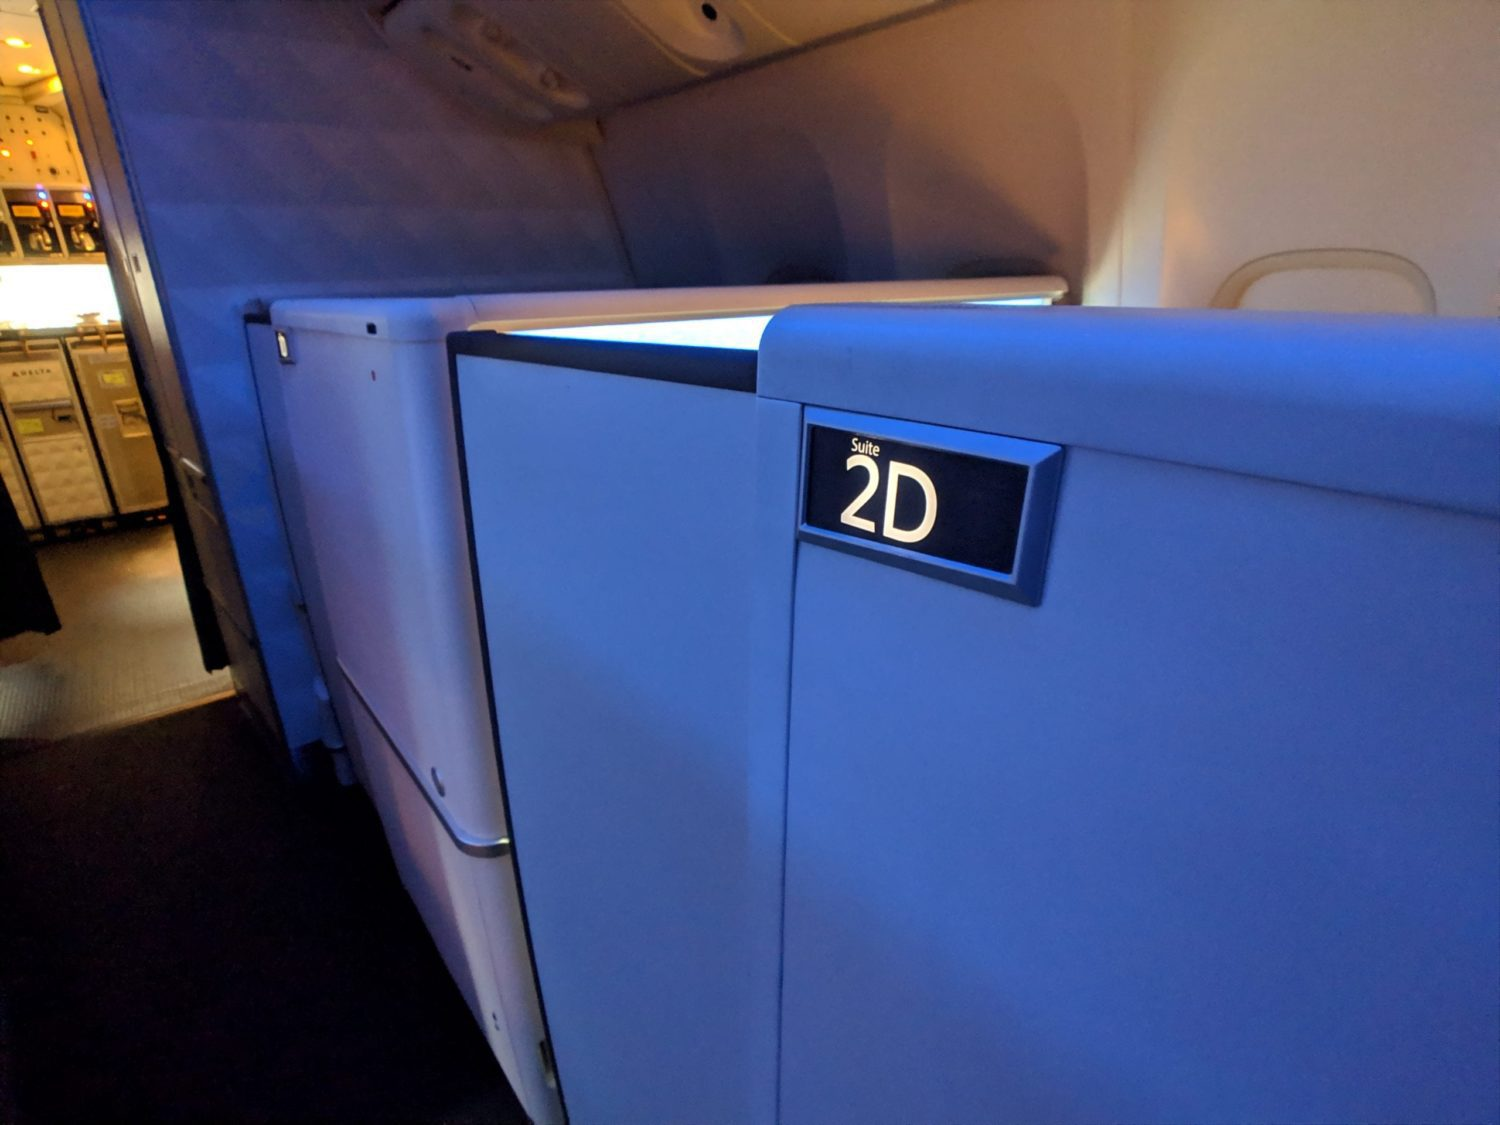 Delta One Suite review door